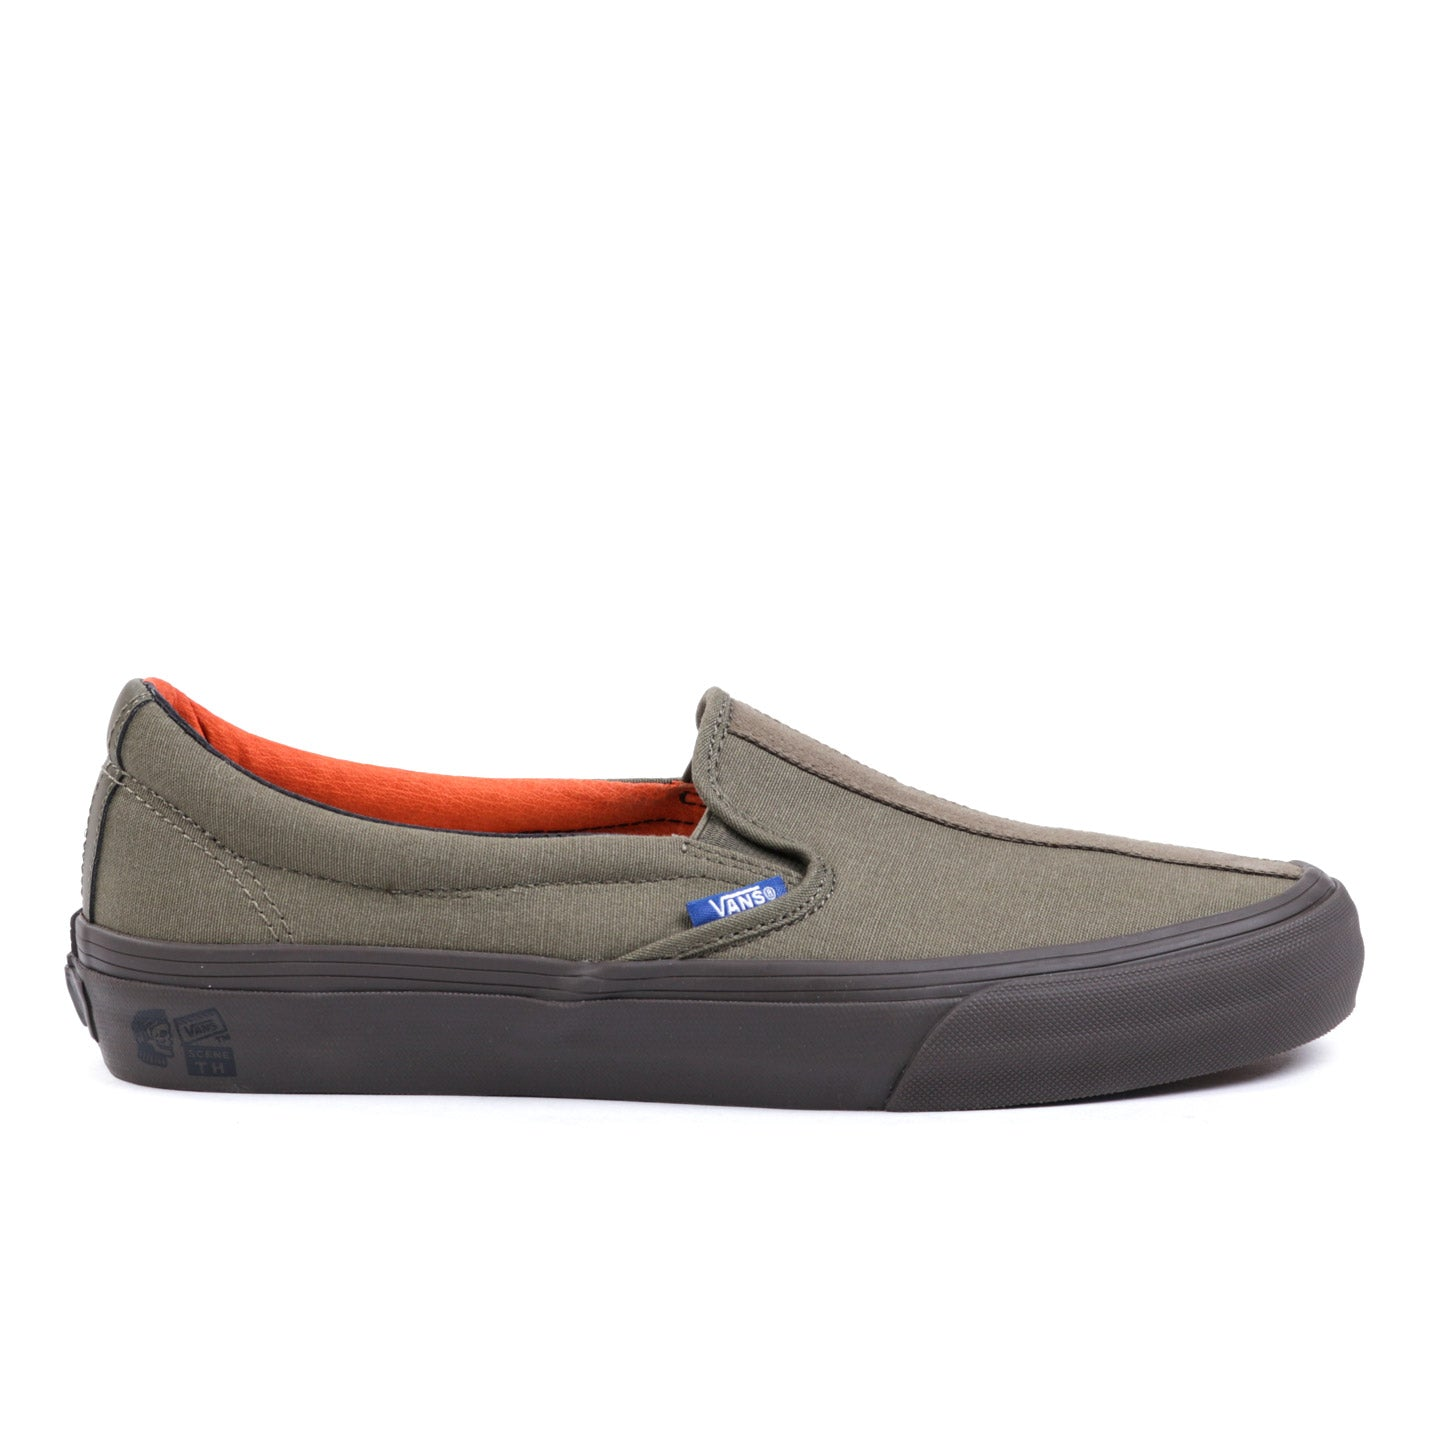 VAULT BY VANS TH SLIP-ON 66 LX STONE GRAY